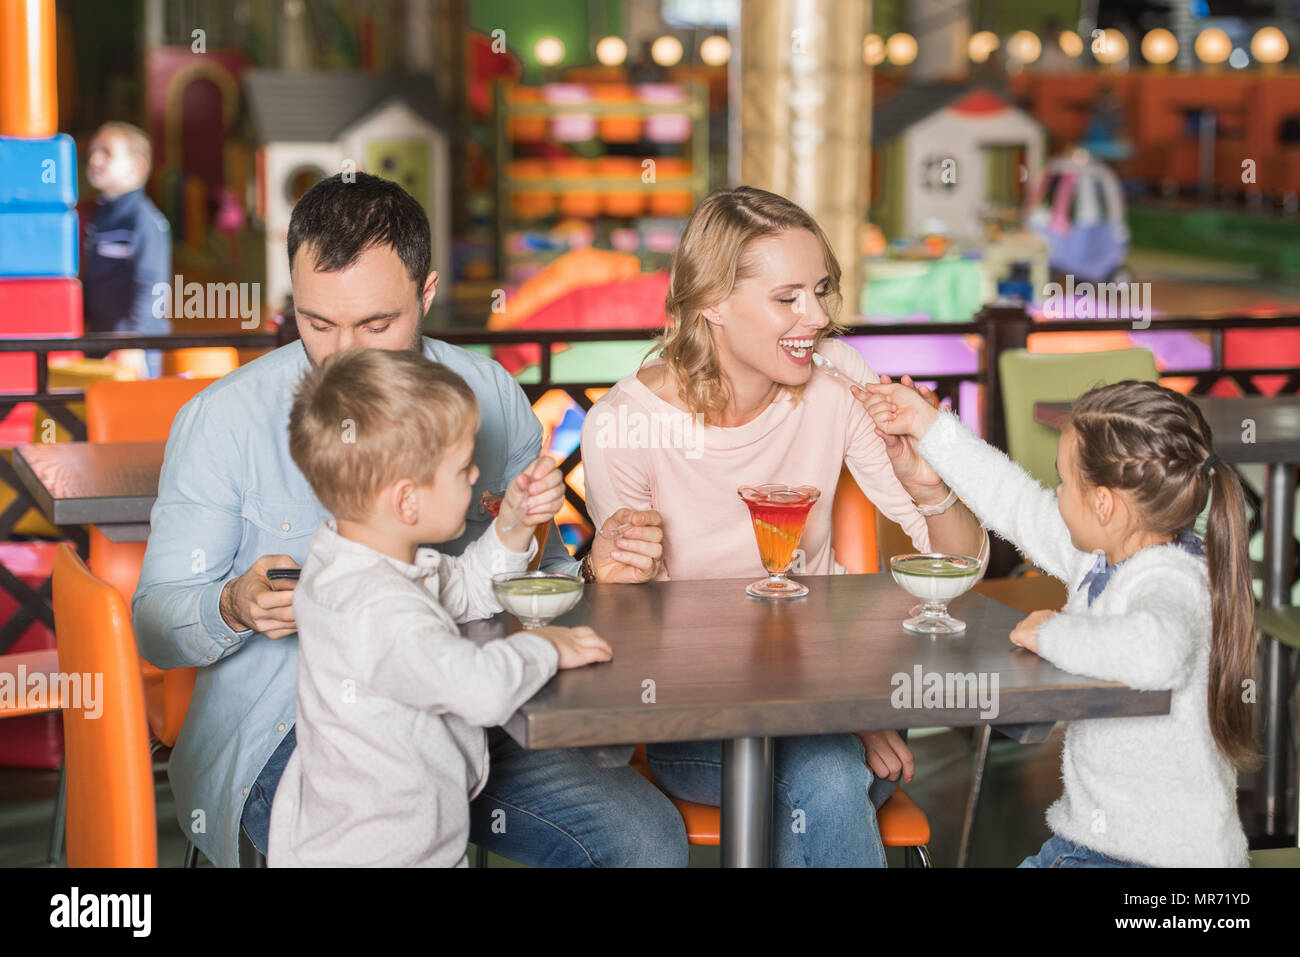 family with two children eating tasty desserts and father using smartphone in cafe - Stock Image